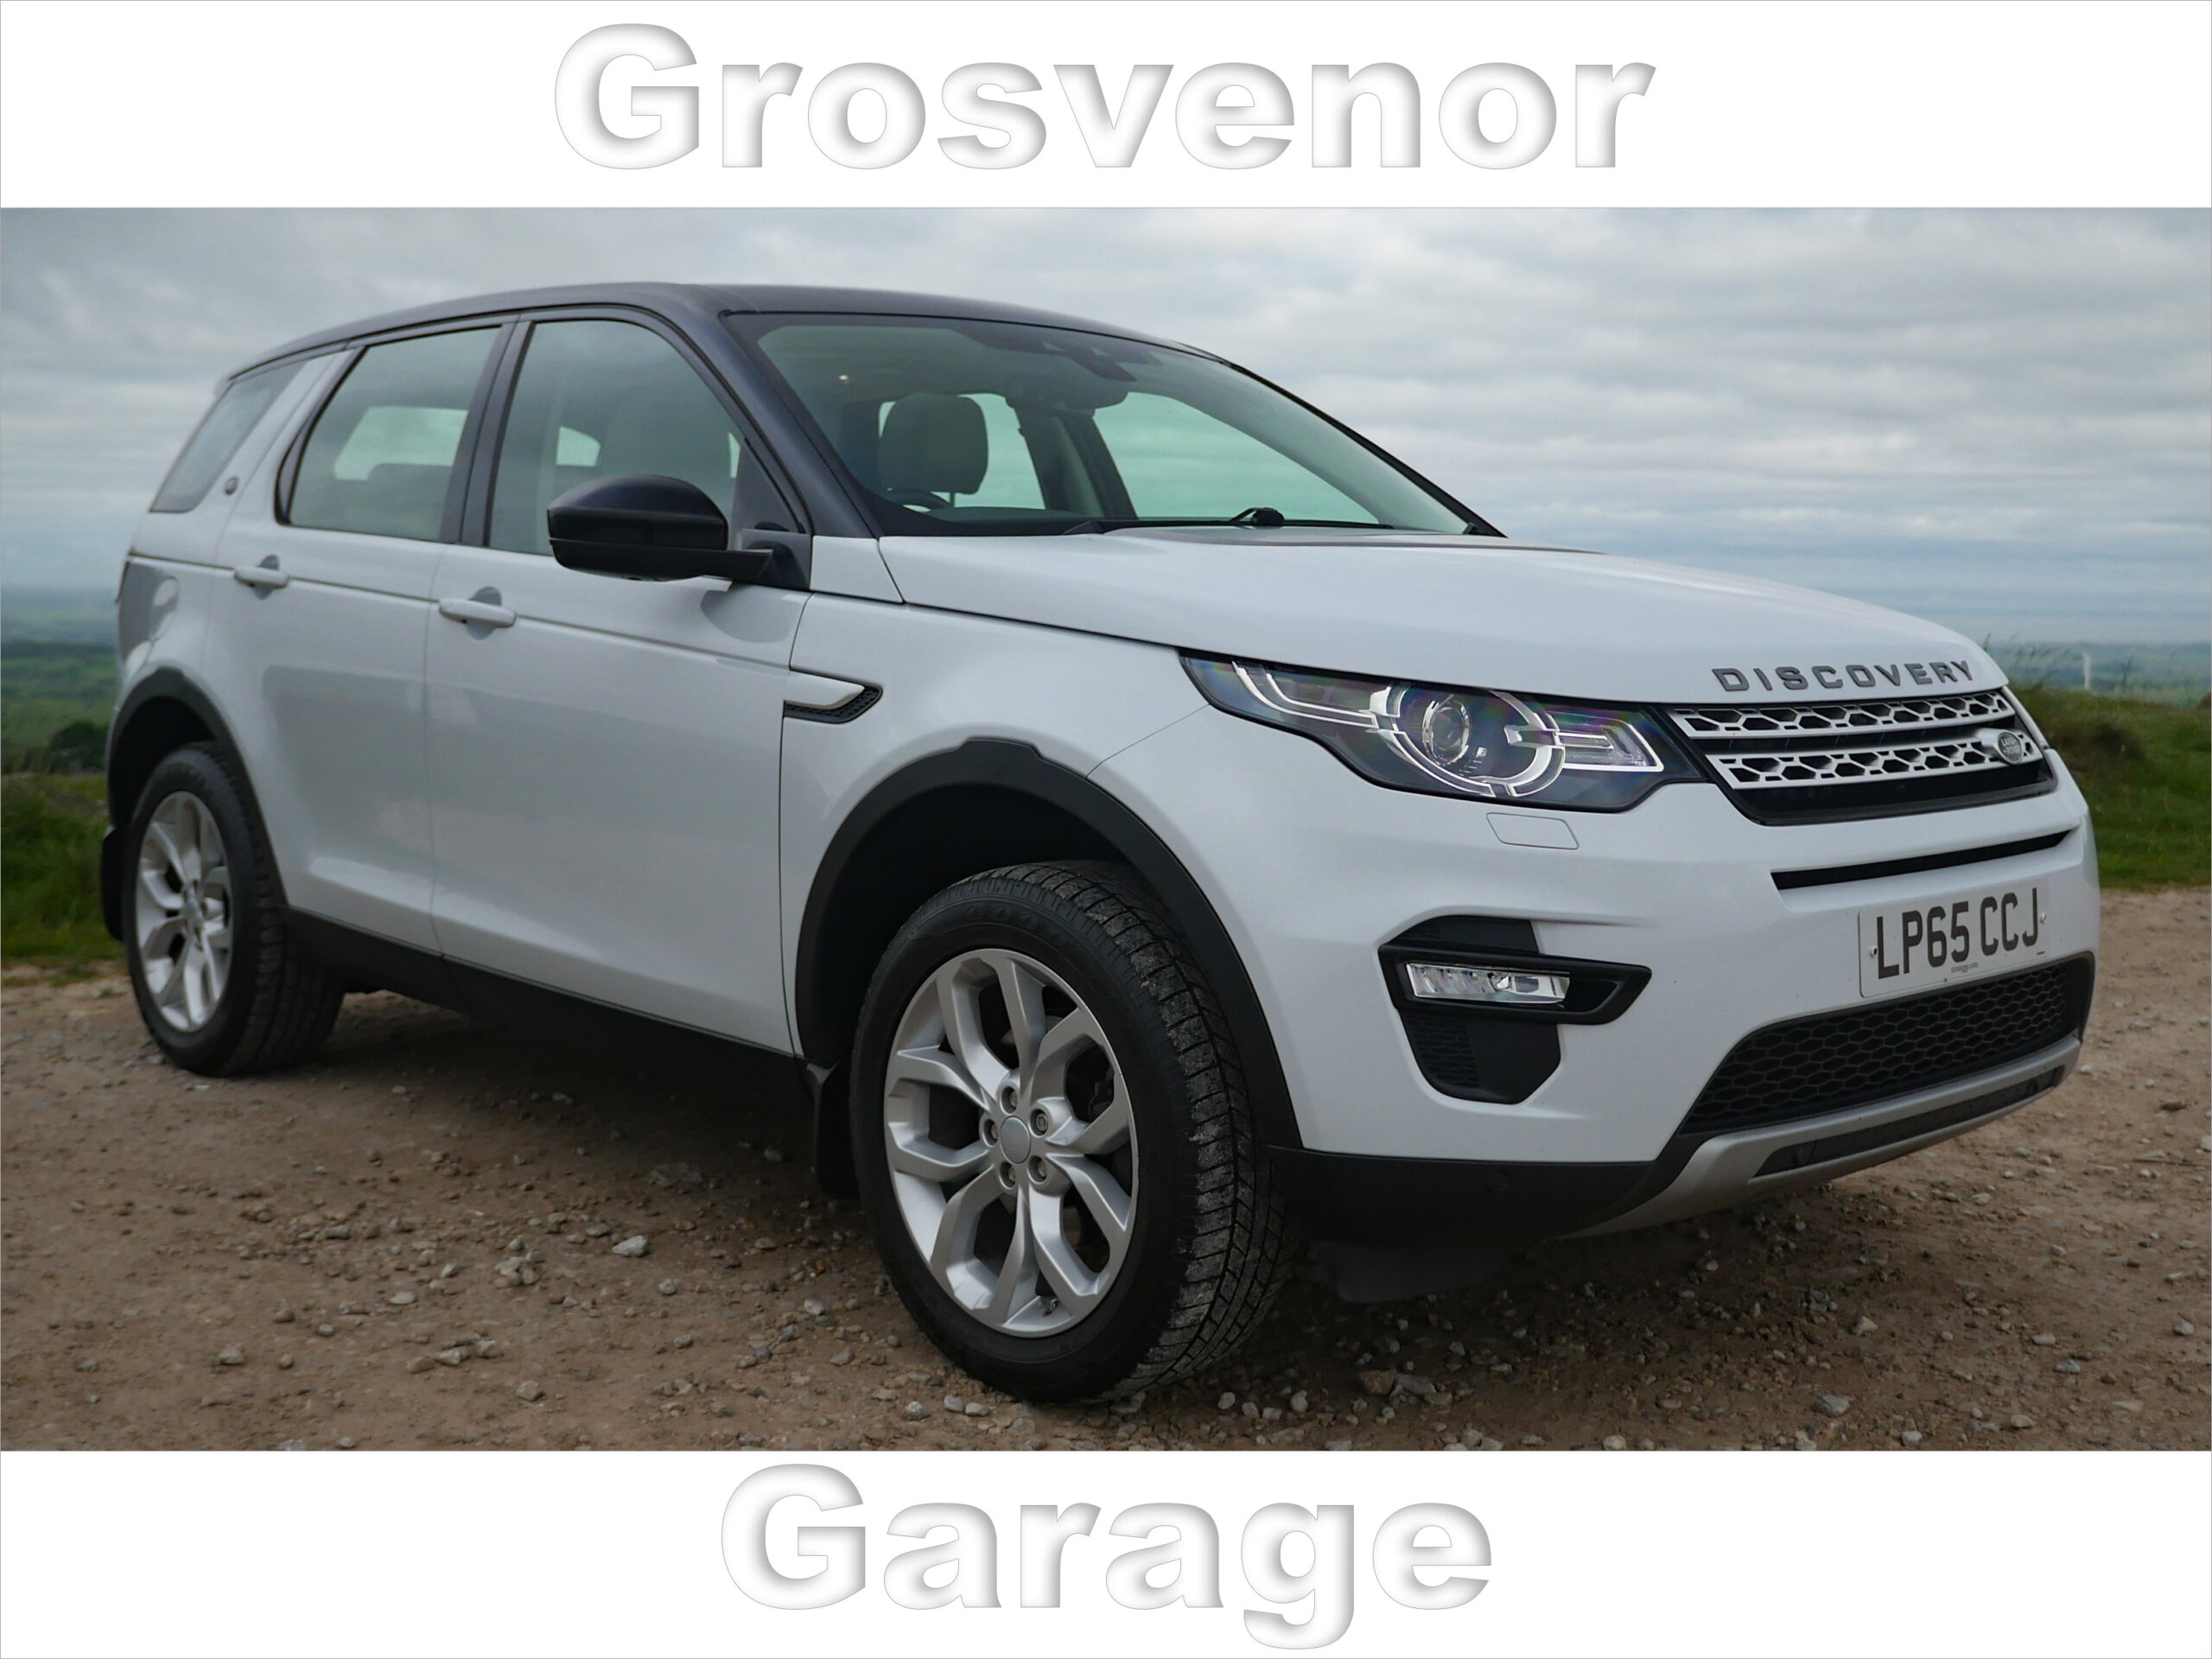 2015 (65) LAND ROVER DISCOVERY SPORT 2.0 TD4 HSE 5DR AUTOMATIC